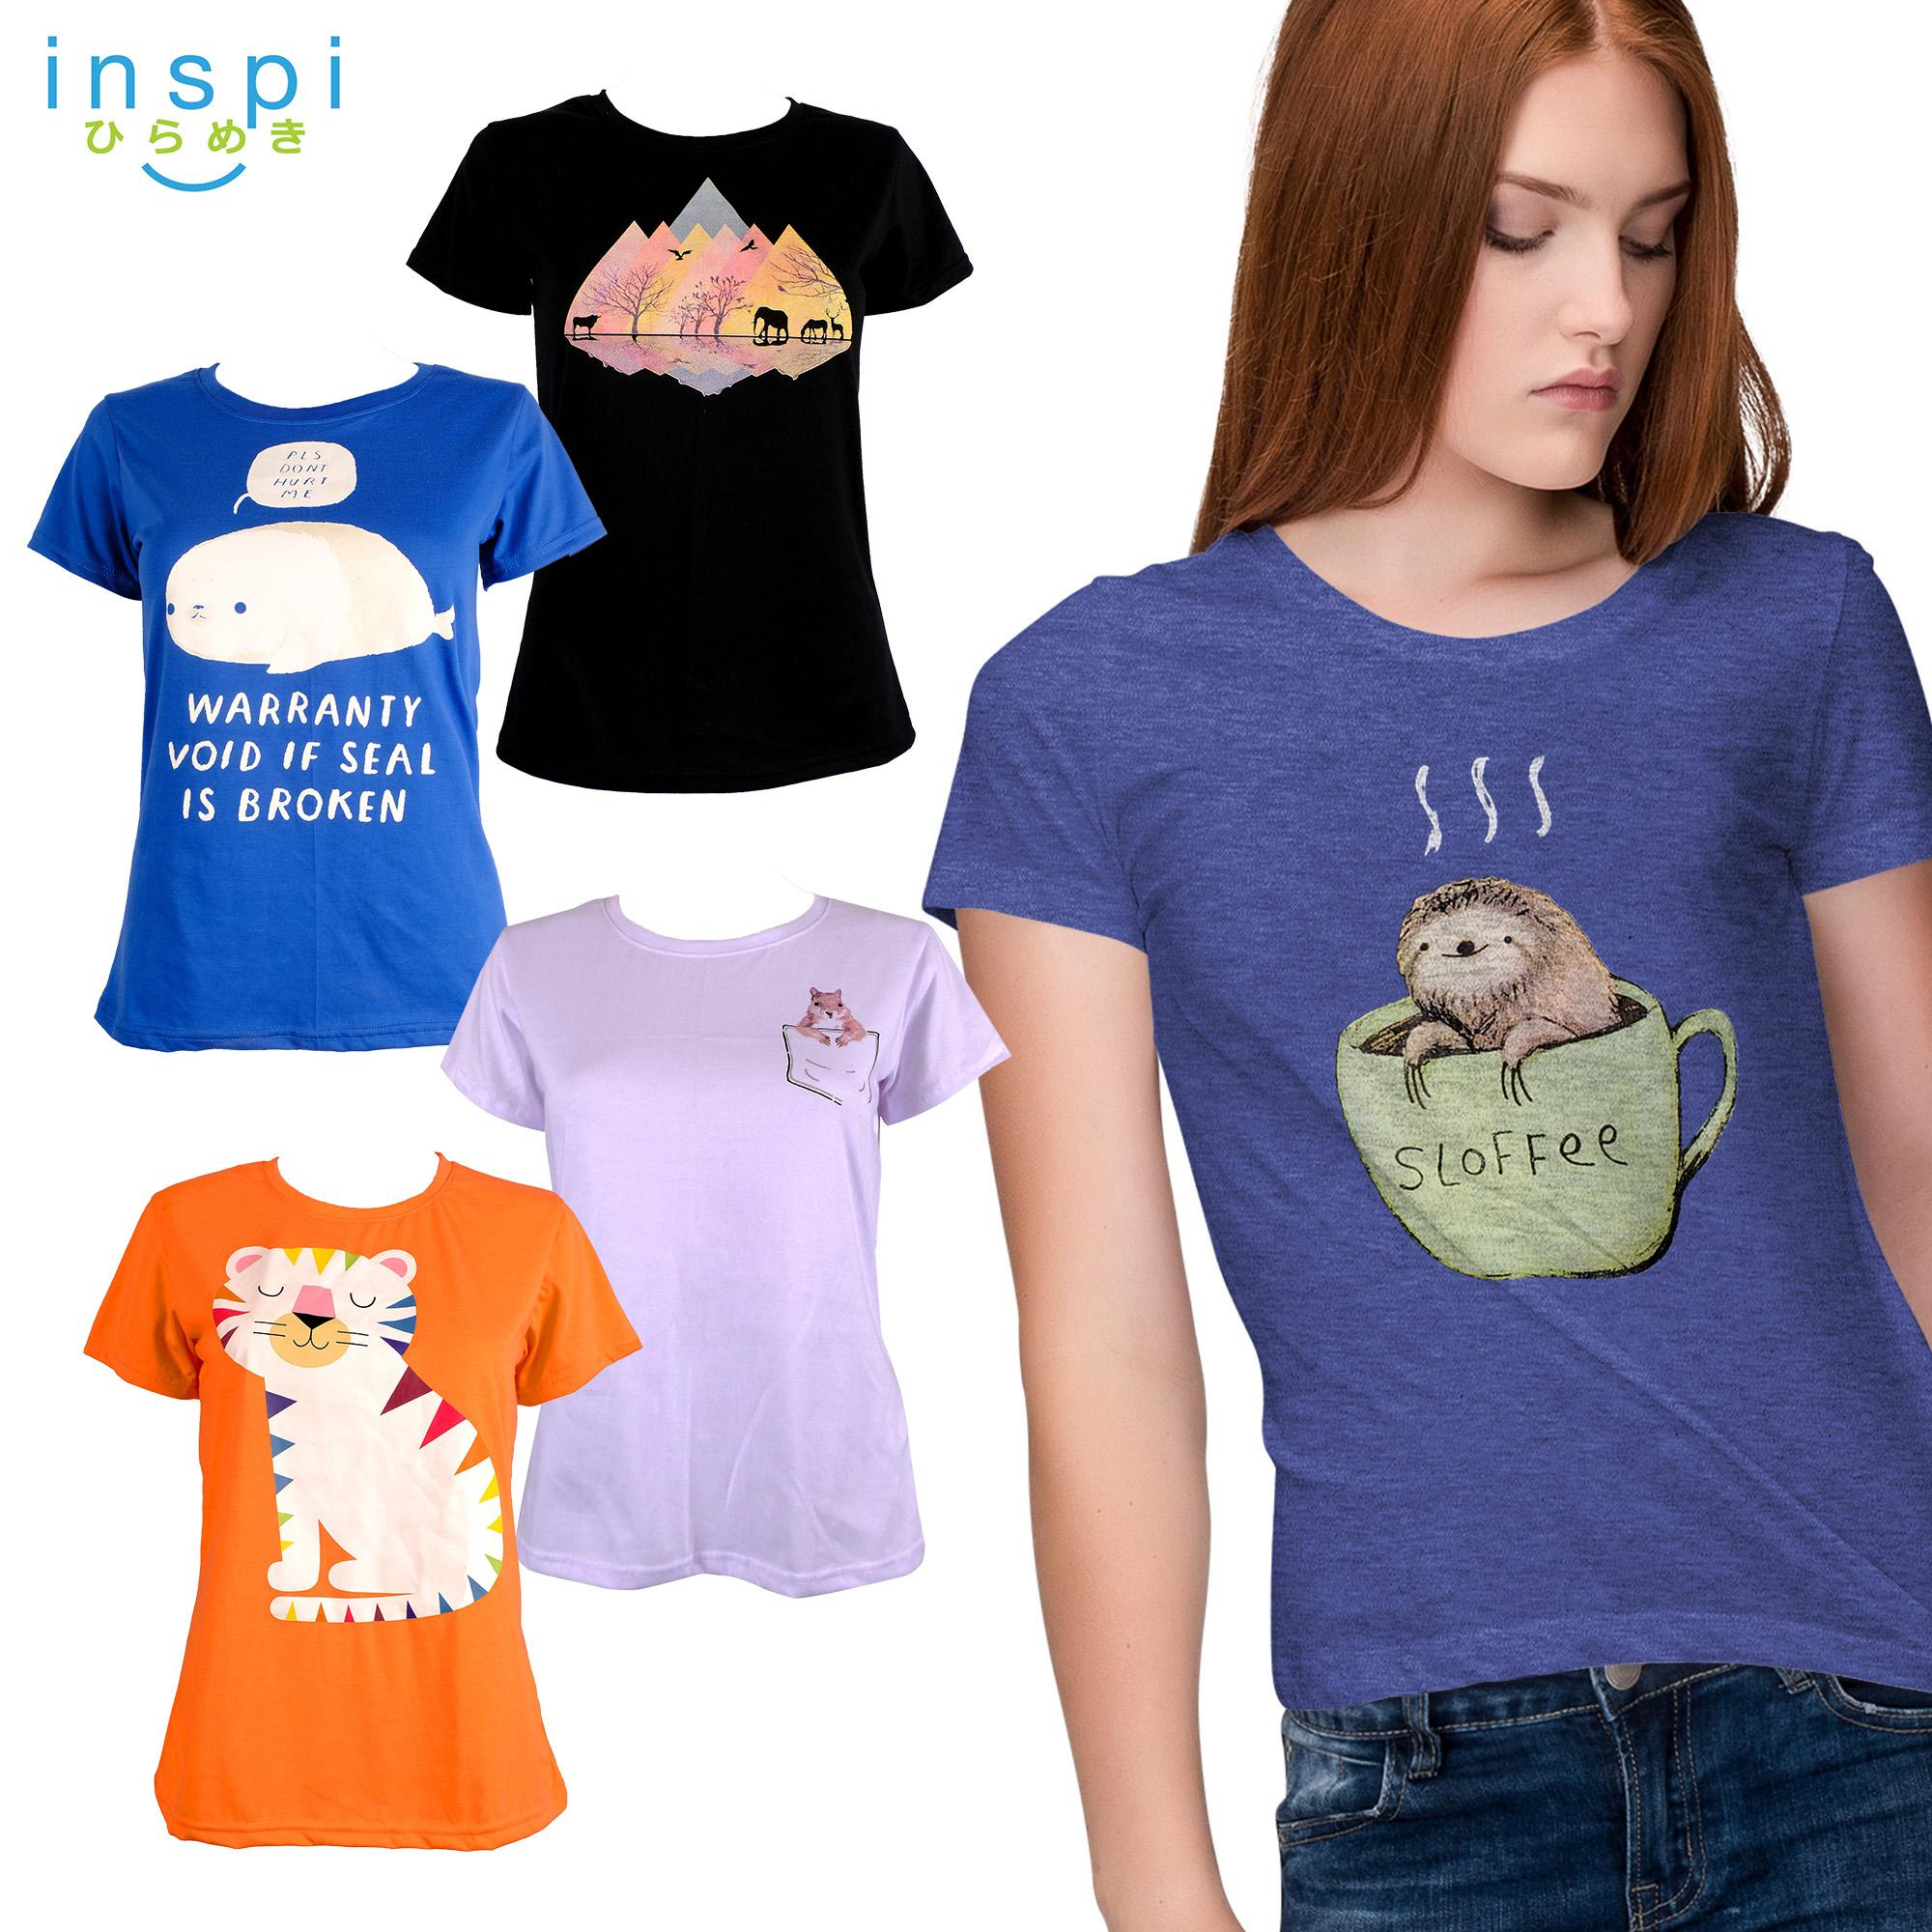 7539a3df9 INSPI Tees Ladies Pet Collection tshirt printed graphic tee Ladies t shirt shirts  women tshirts for